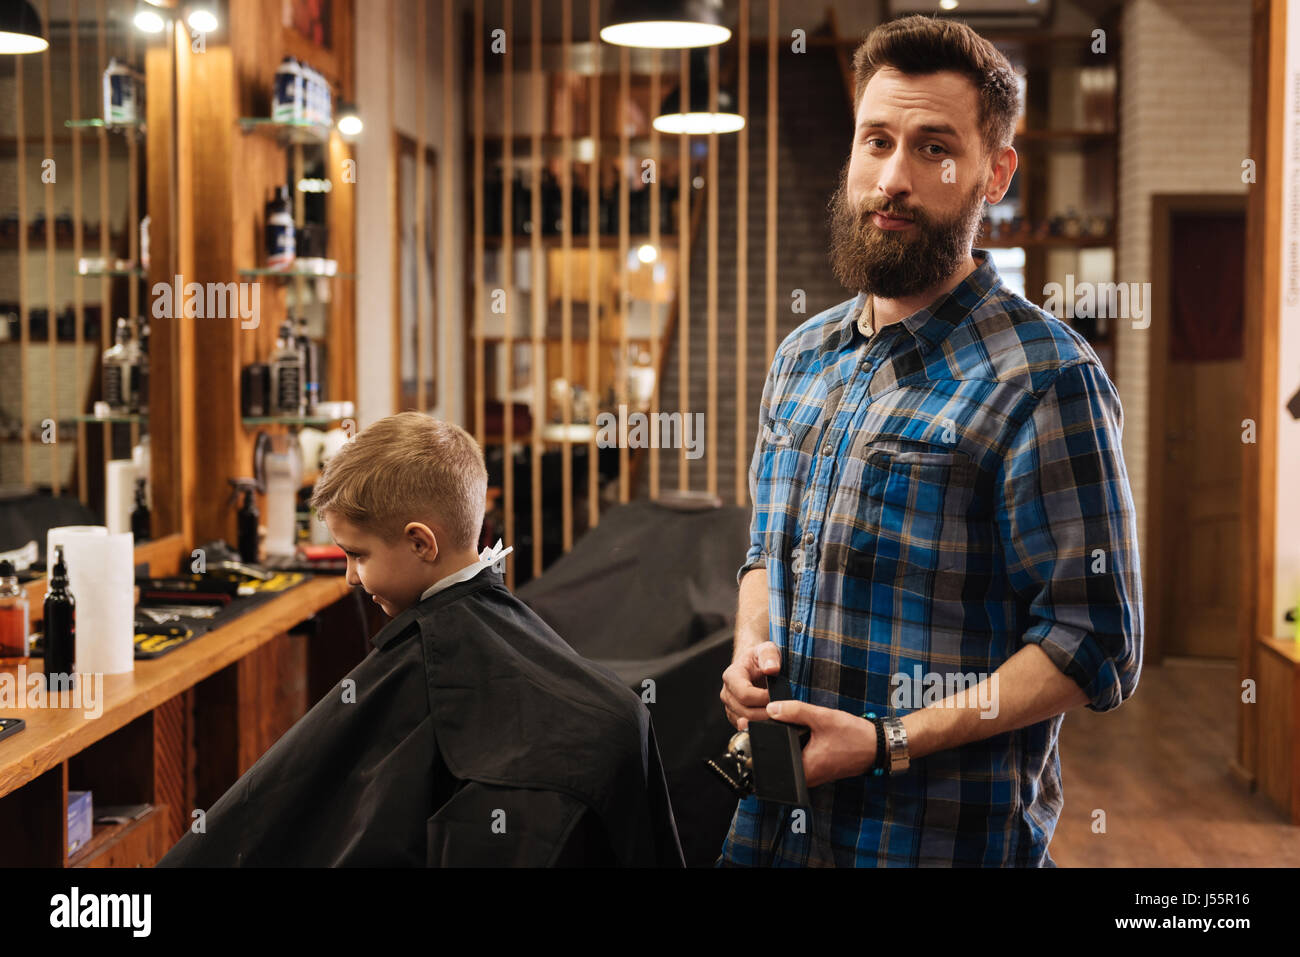 Nice good looking barber holding a comb - Stock Image